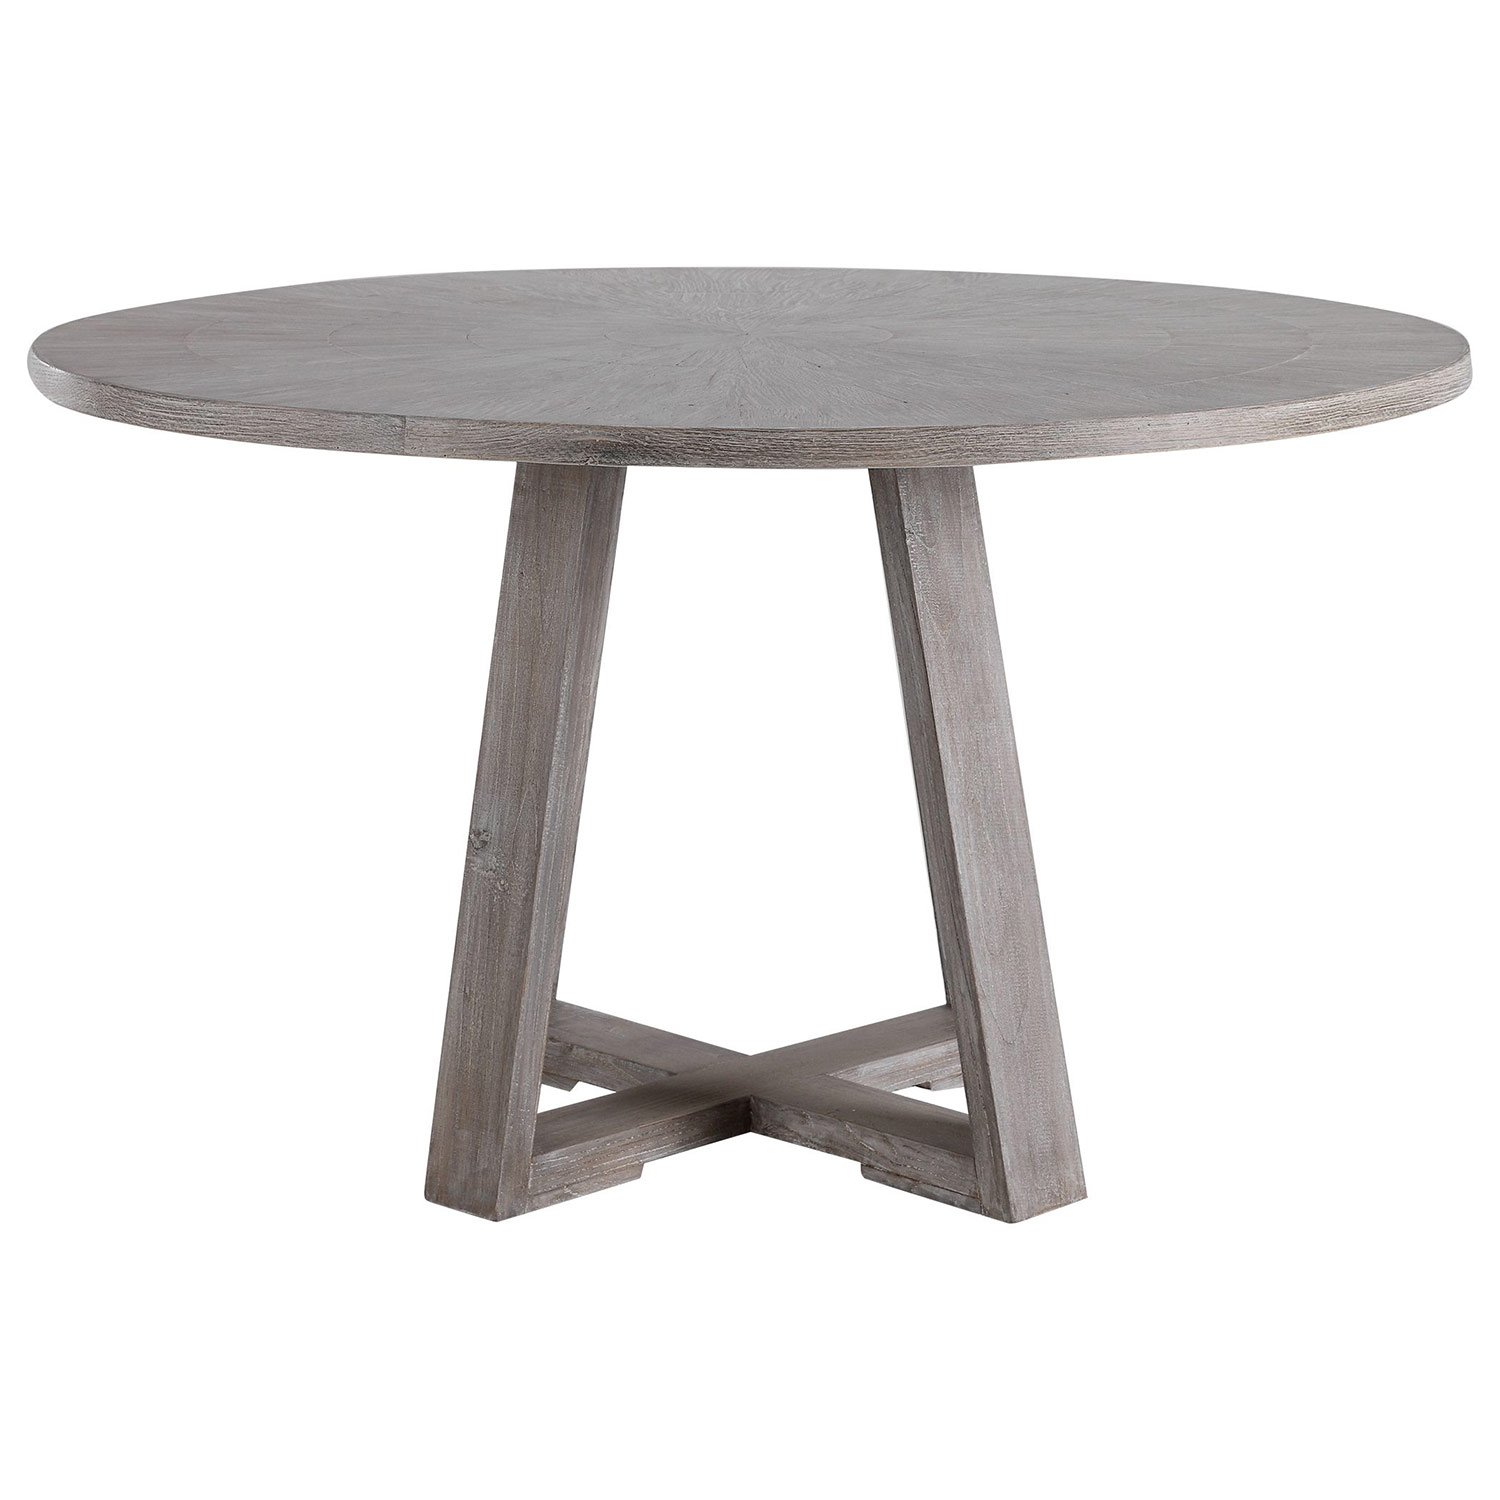 Uttermost Gidran Dining Table - Gray